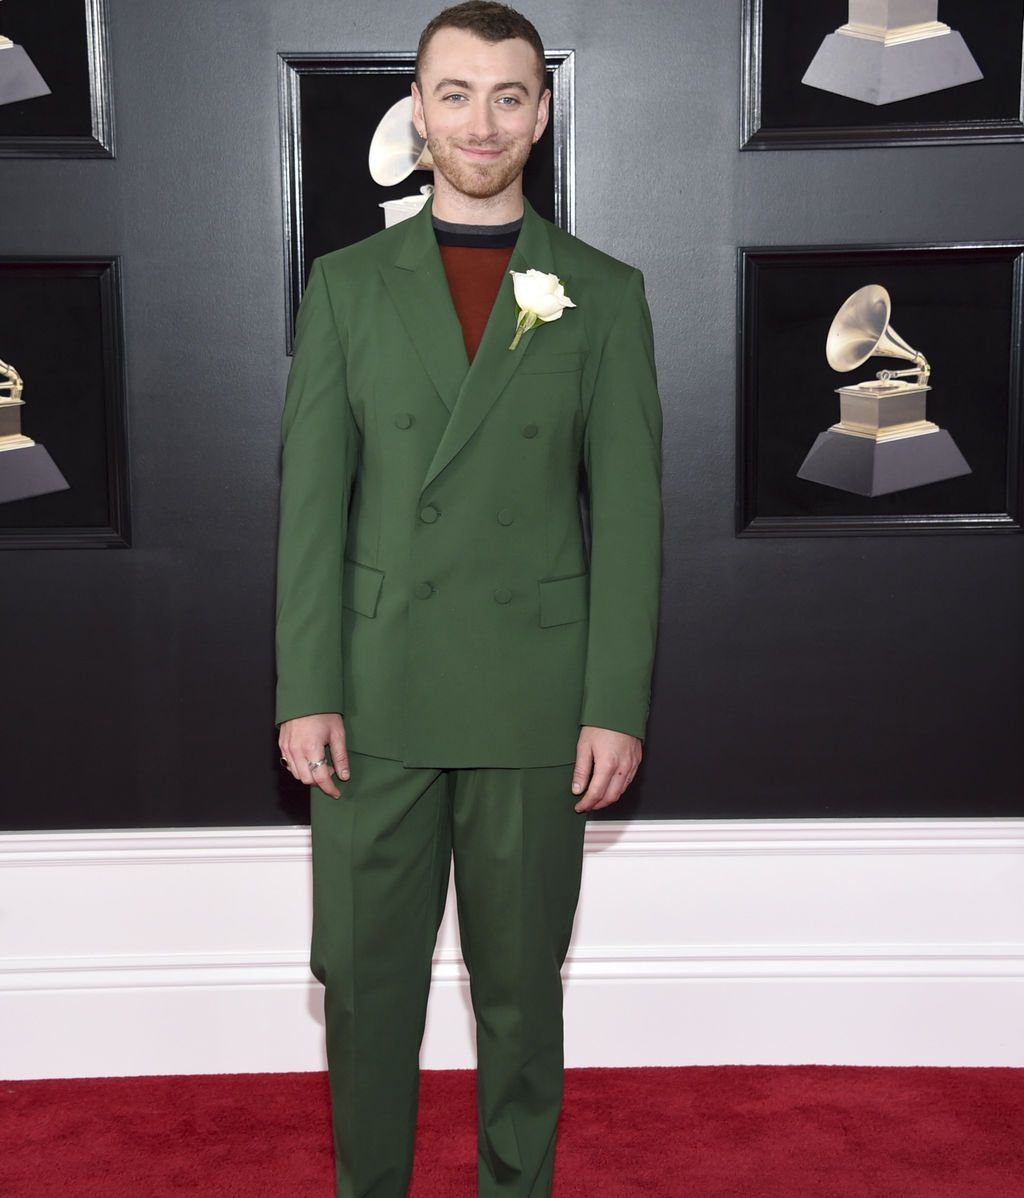 Sam Smith apoyando el movimiento Time's Up